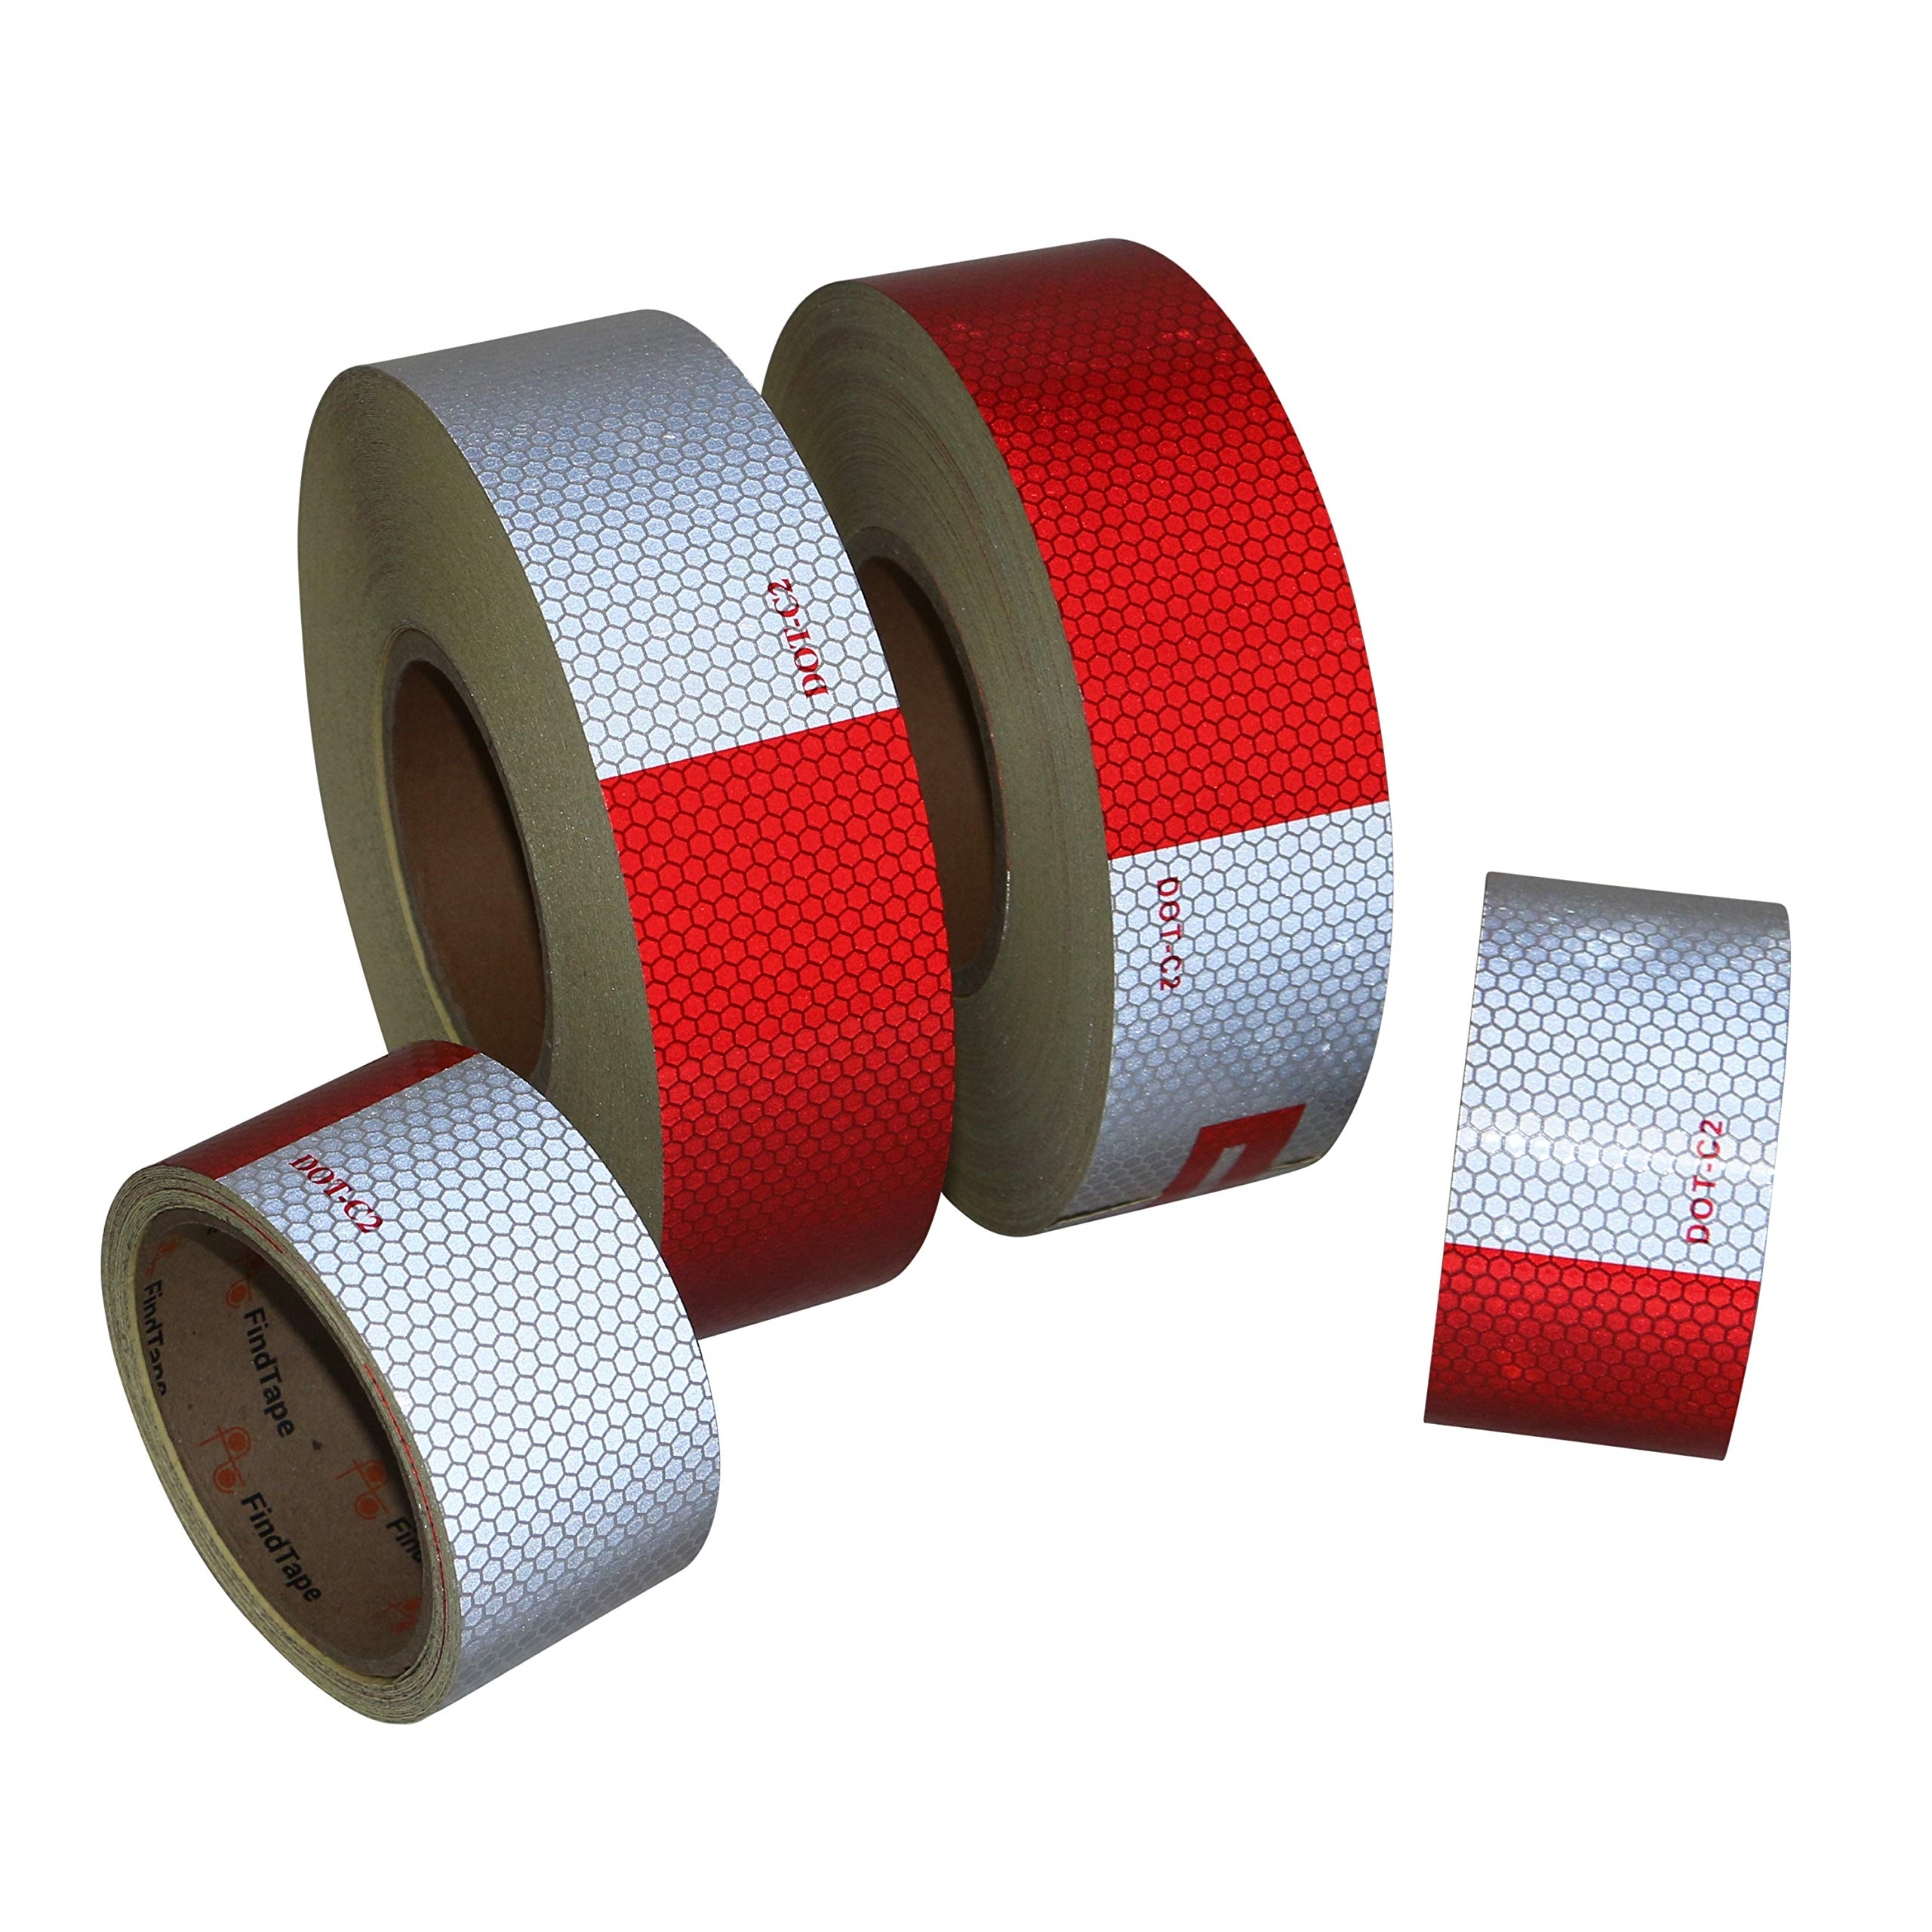 FindTape DOT-GB Glass Bead Reflective Conspicuity Tape: 2 in. x 50 yds. (Alternating 11 in. Red 7 in. White/Honeycomb Design)